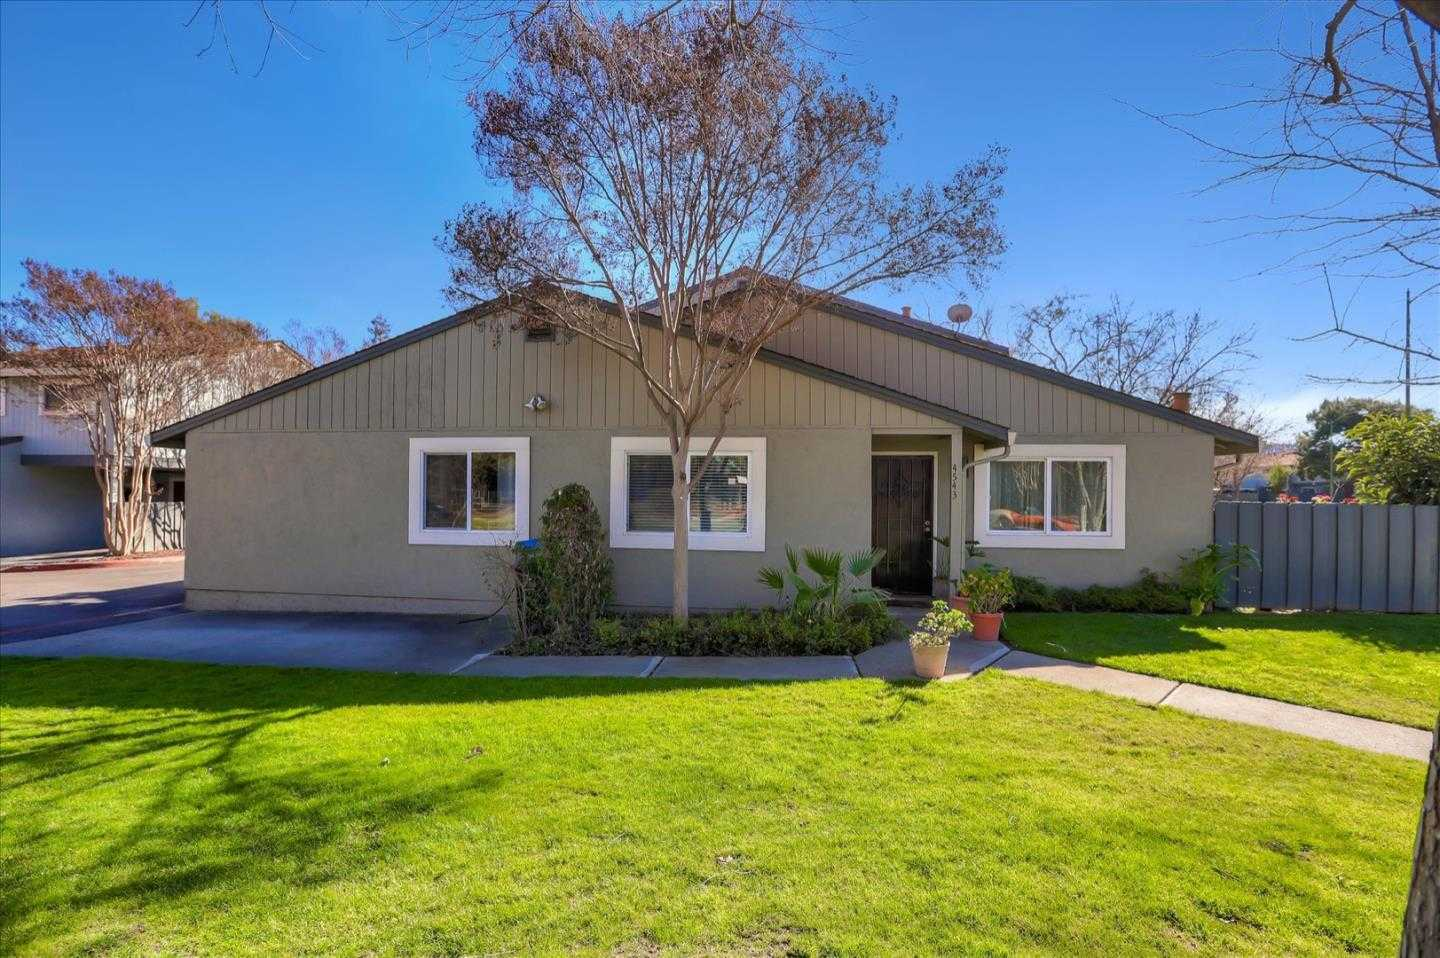 $900,000 - 2Br/1Ba -  for Sale in San Jose